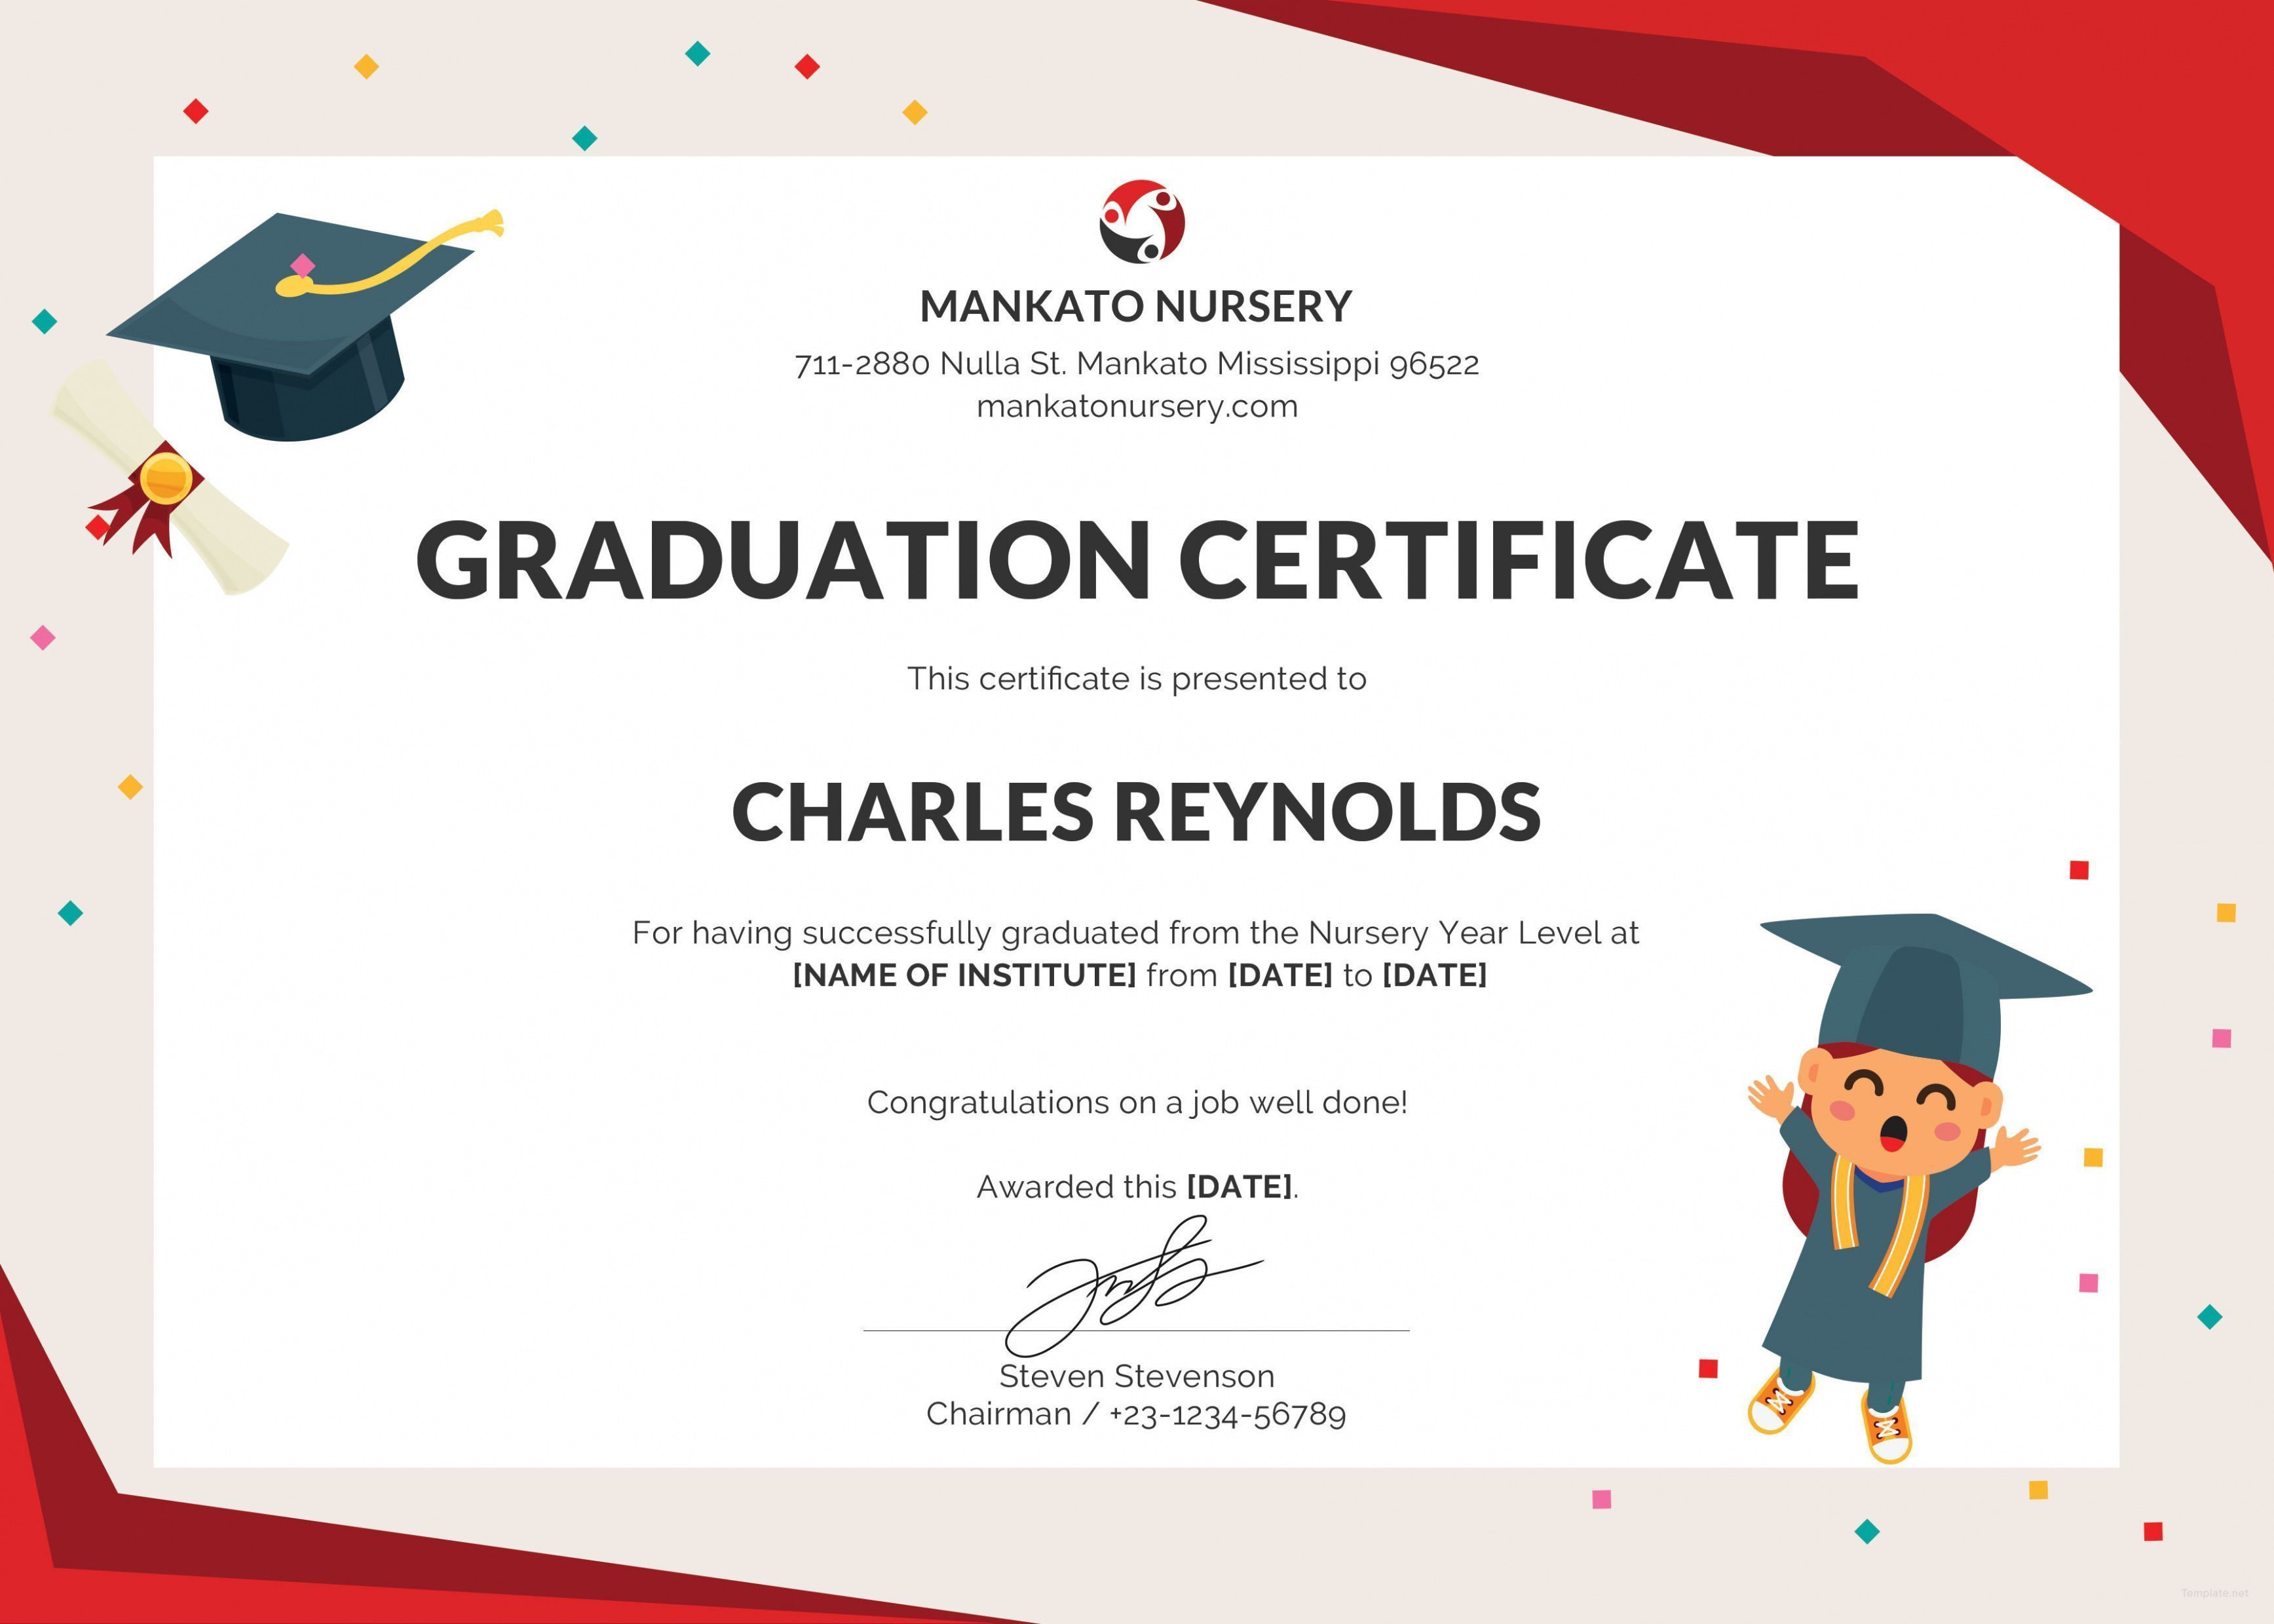 009 Incredible Degree Certificate Template Word High Definition Full